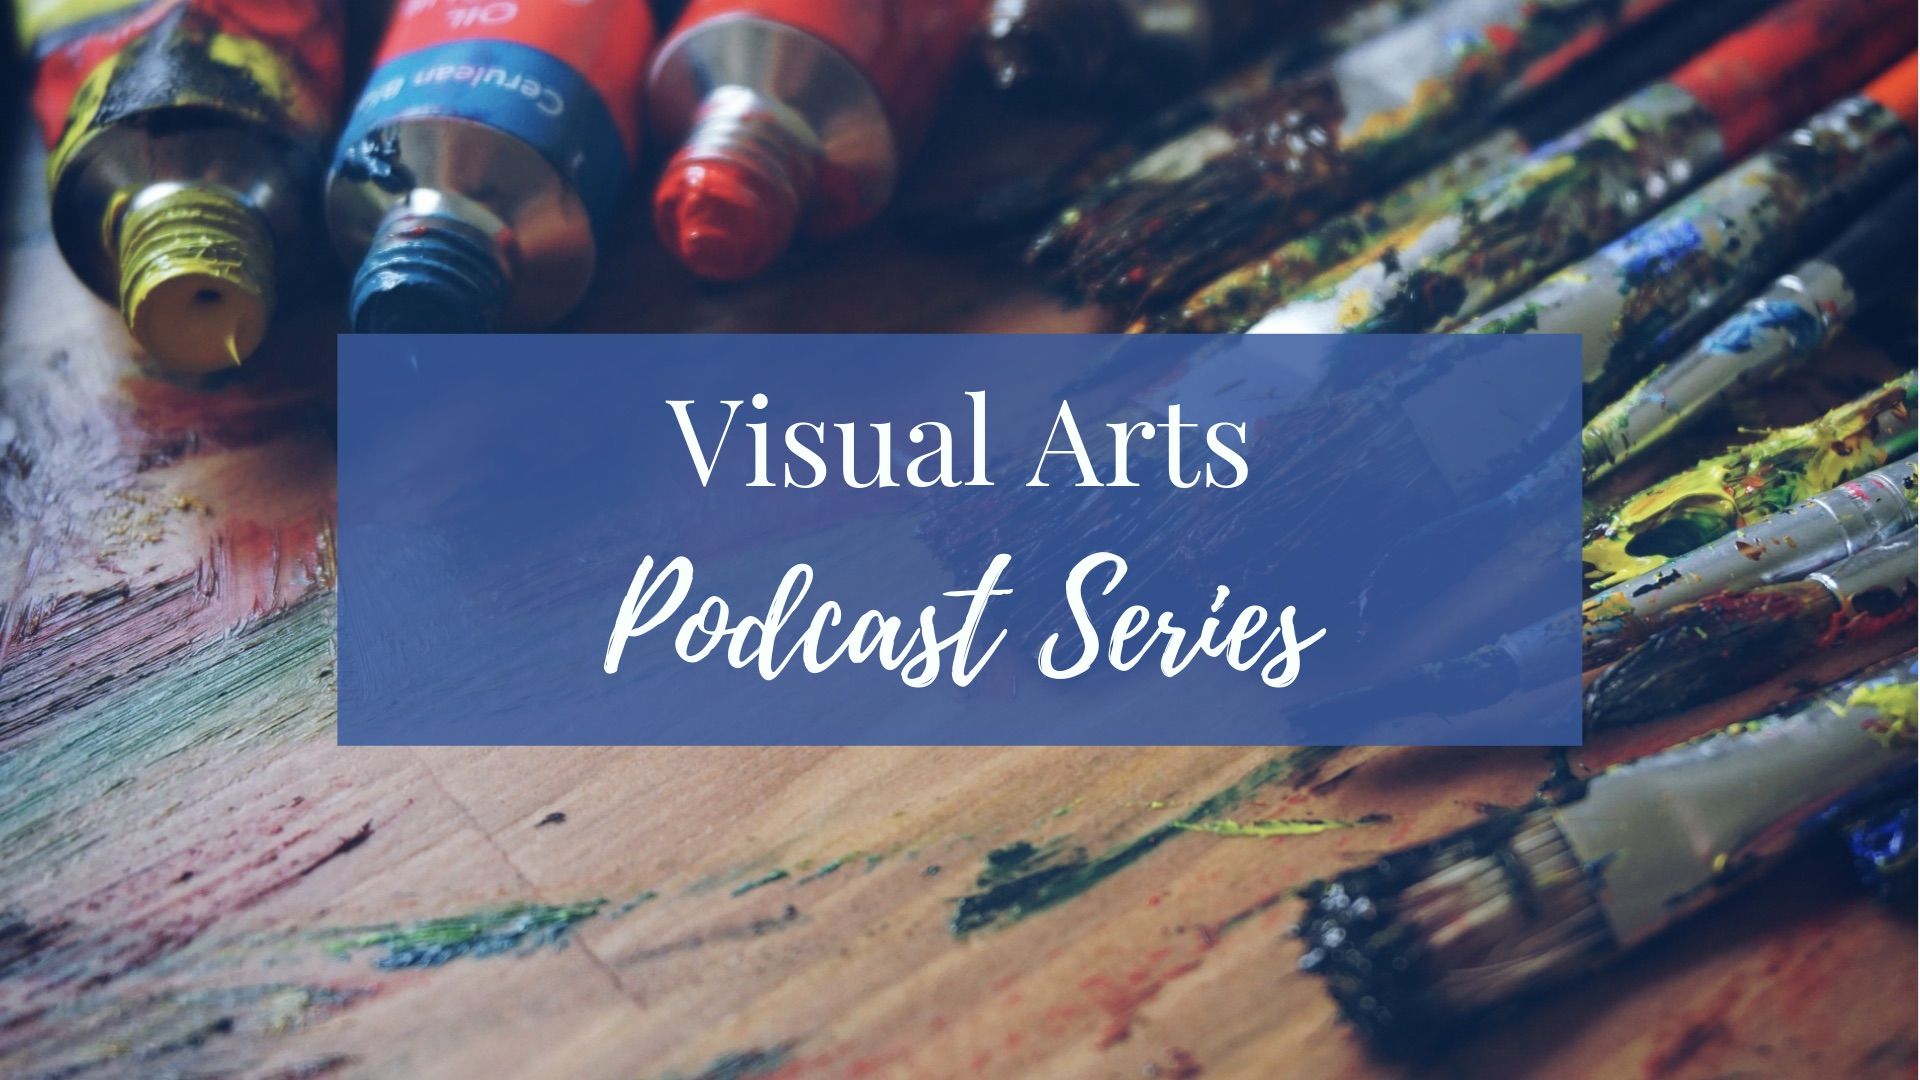 LWS Visual Arts Podcast Series.jpg